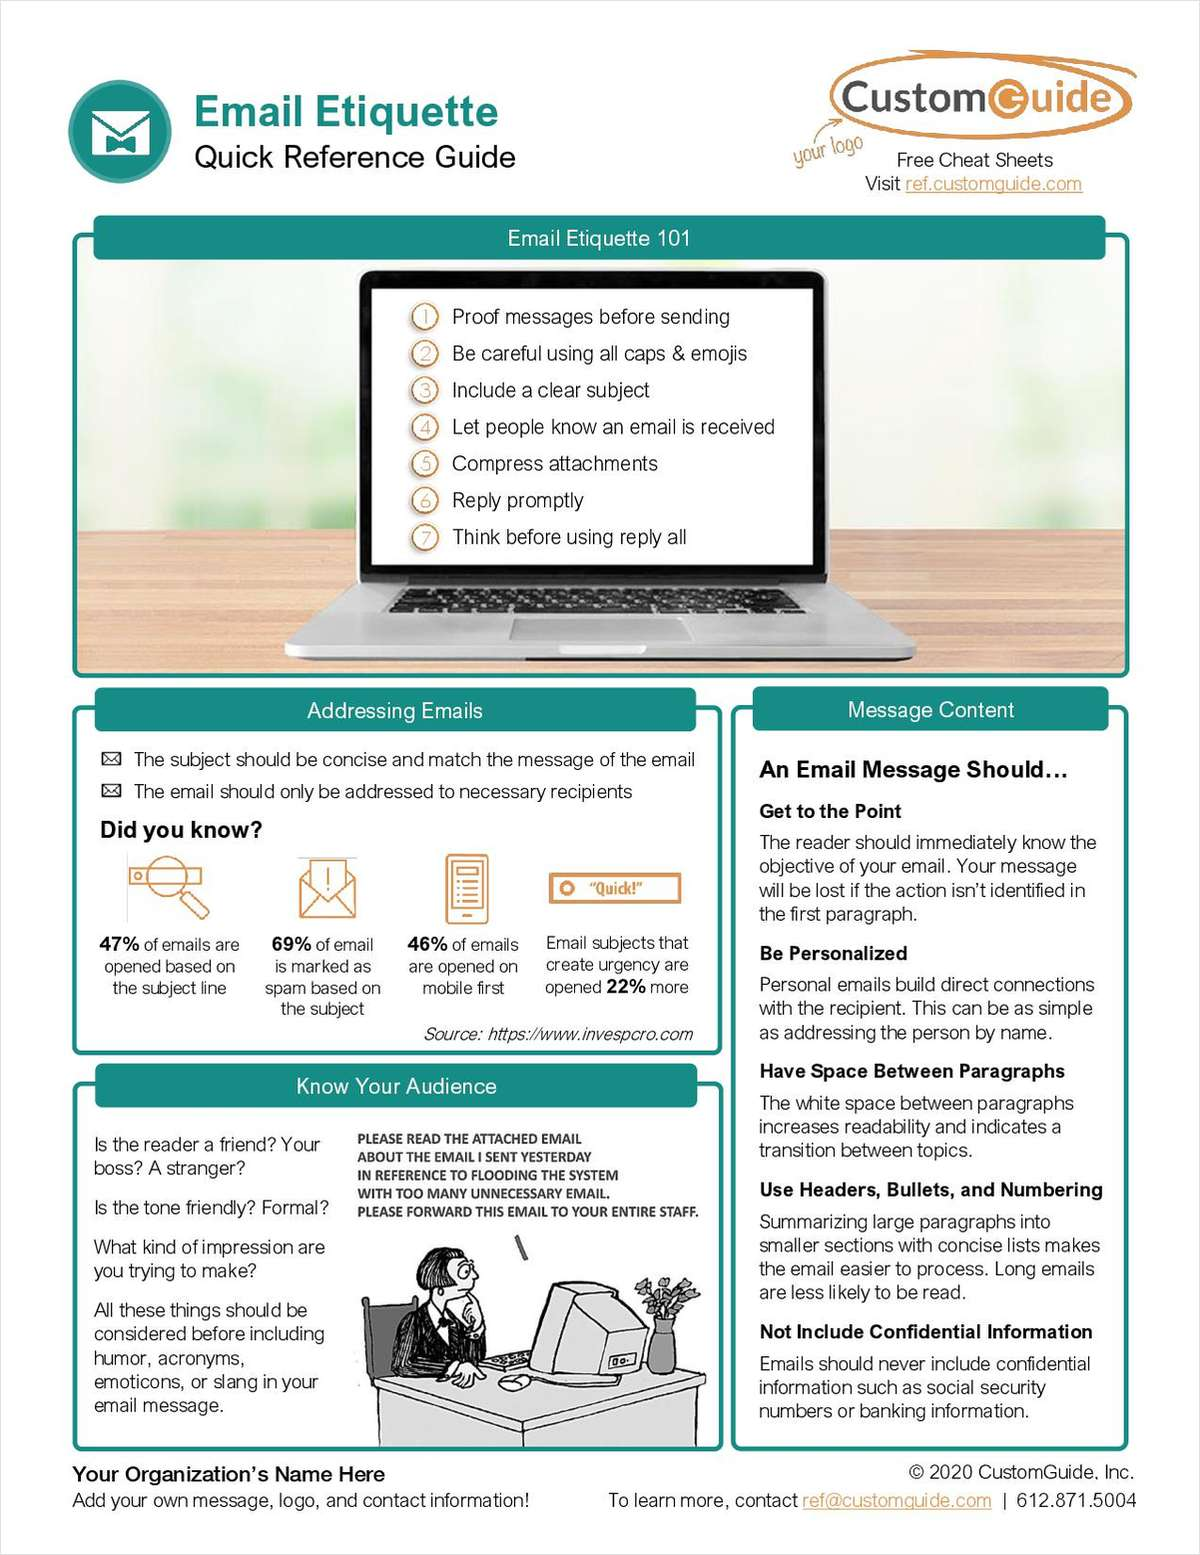 Email Etiquette Quick Reference Guide